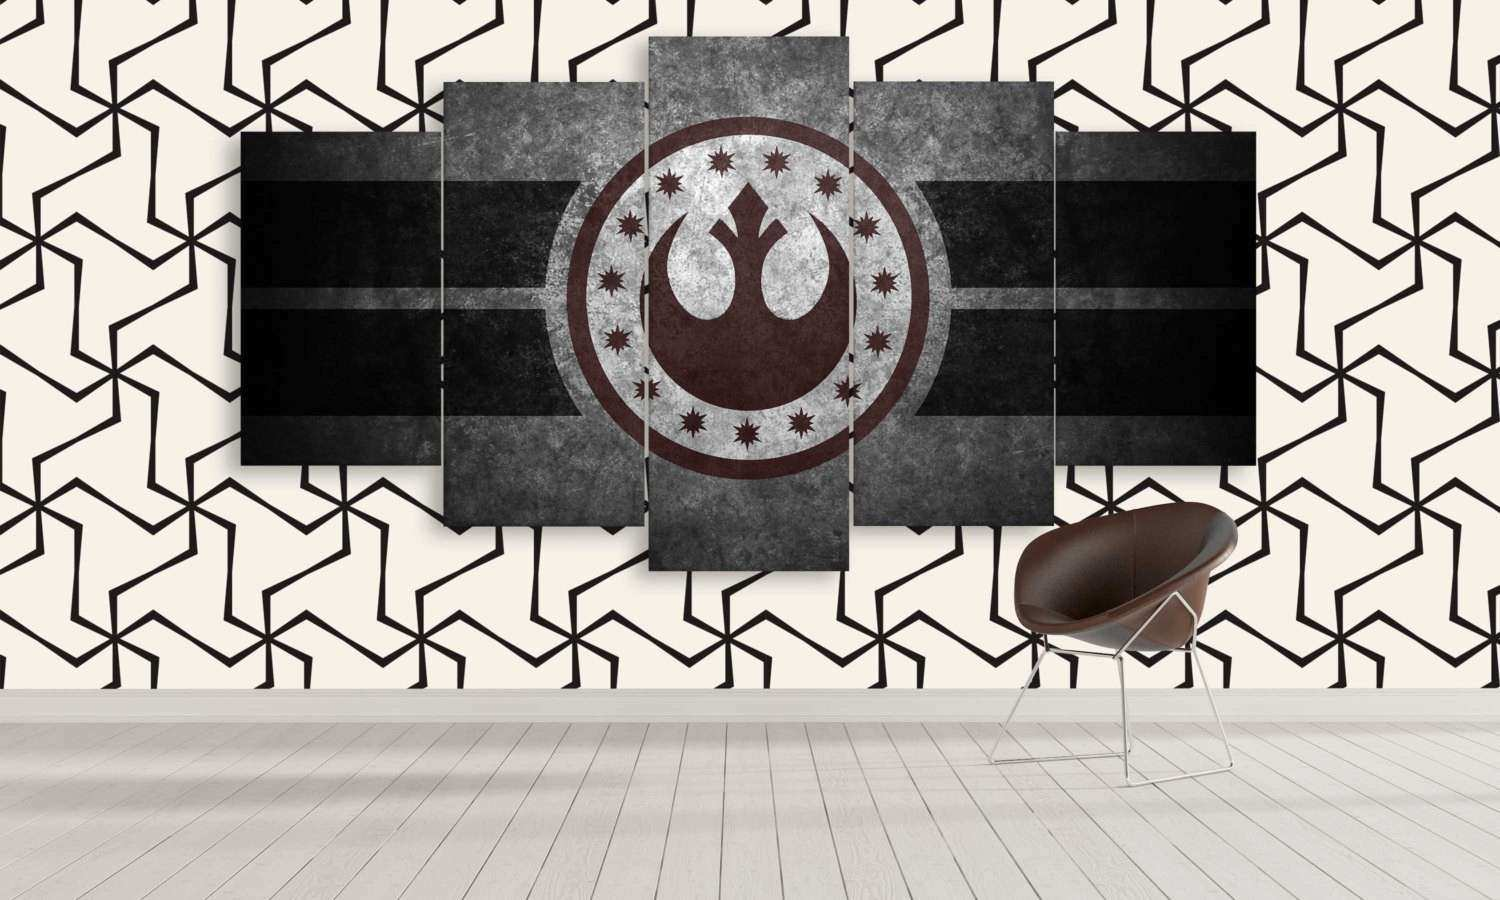 Extra Star Wars Panel Canvas Wall Art New by